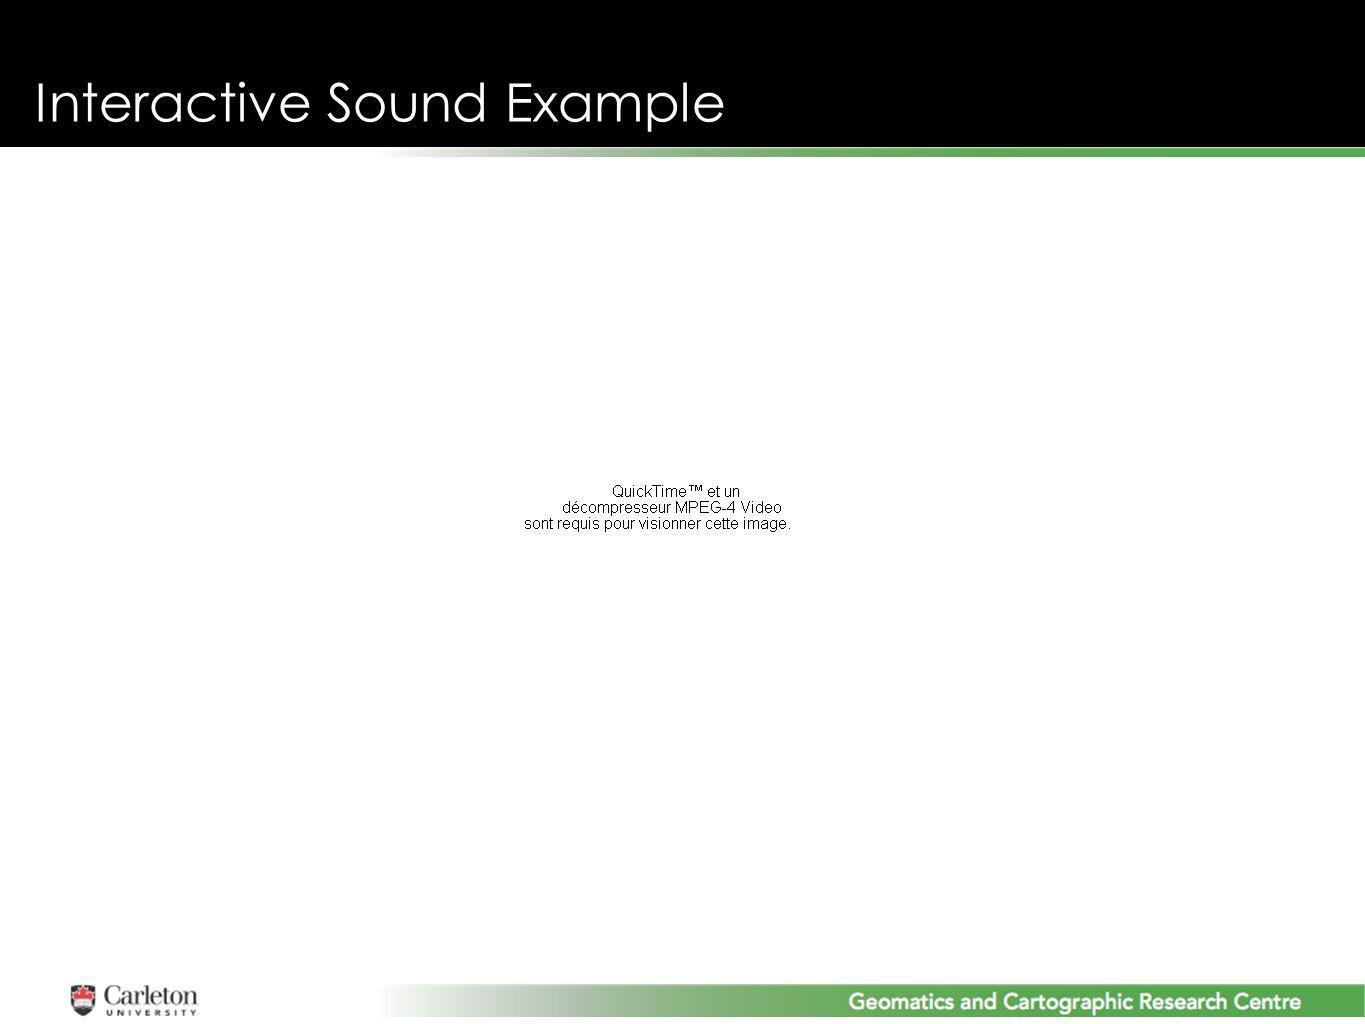 Interactive Sound Example